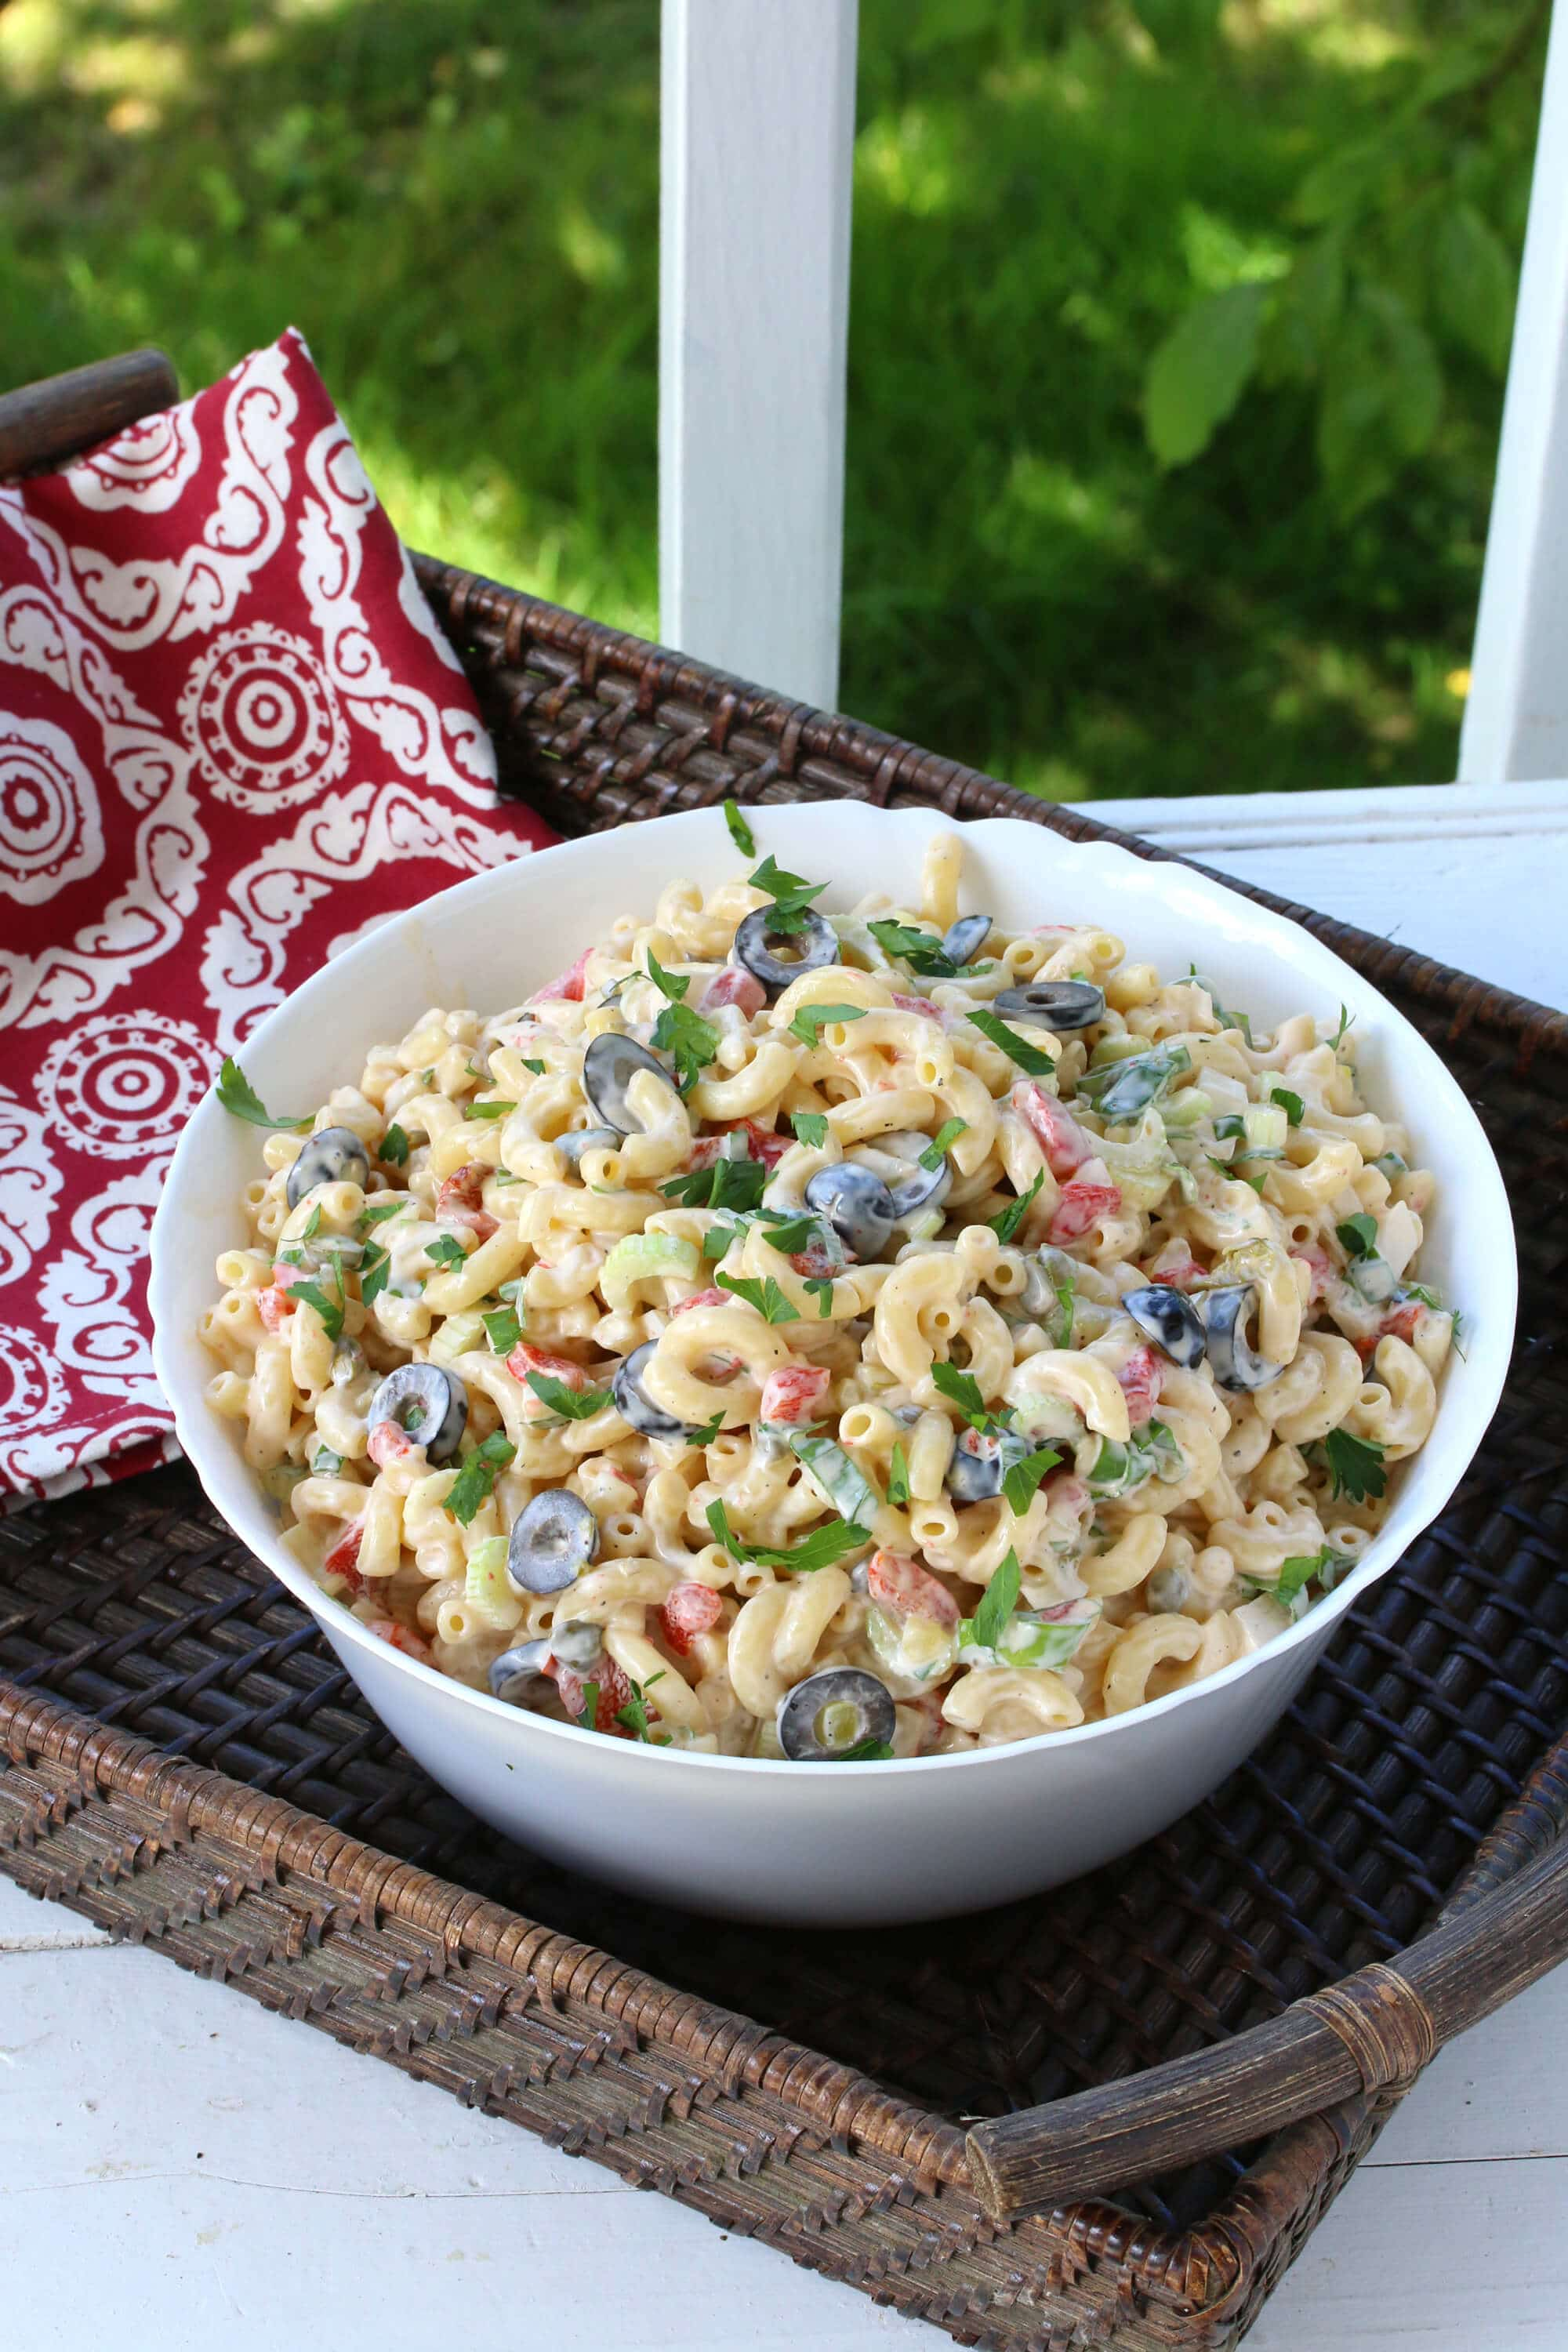 Best Macaroni Salad The Daring Gourmet